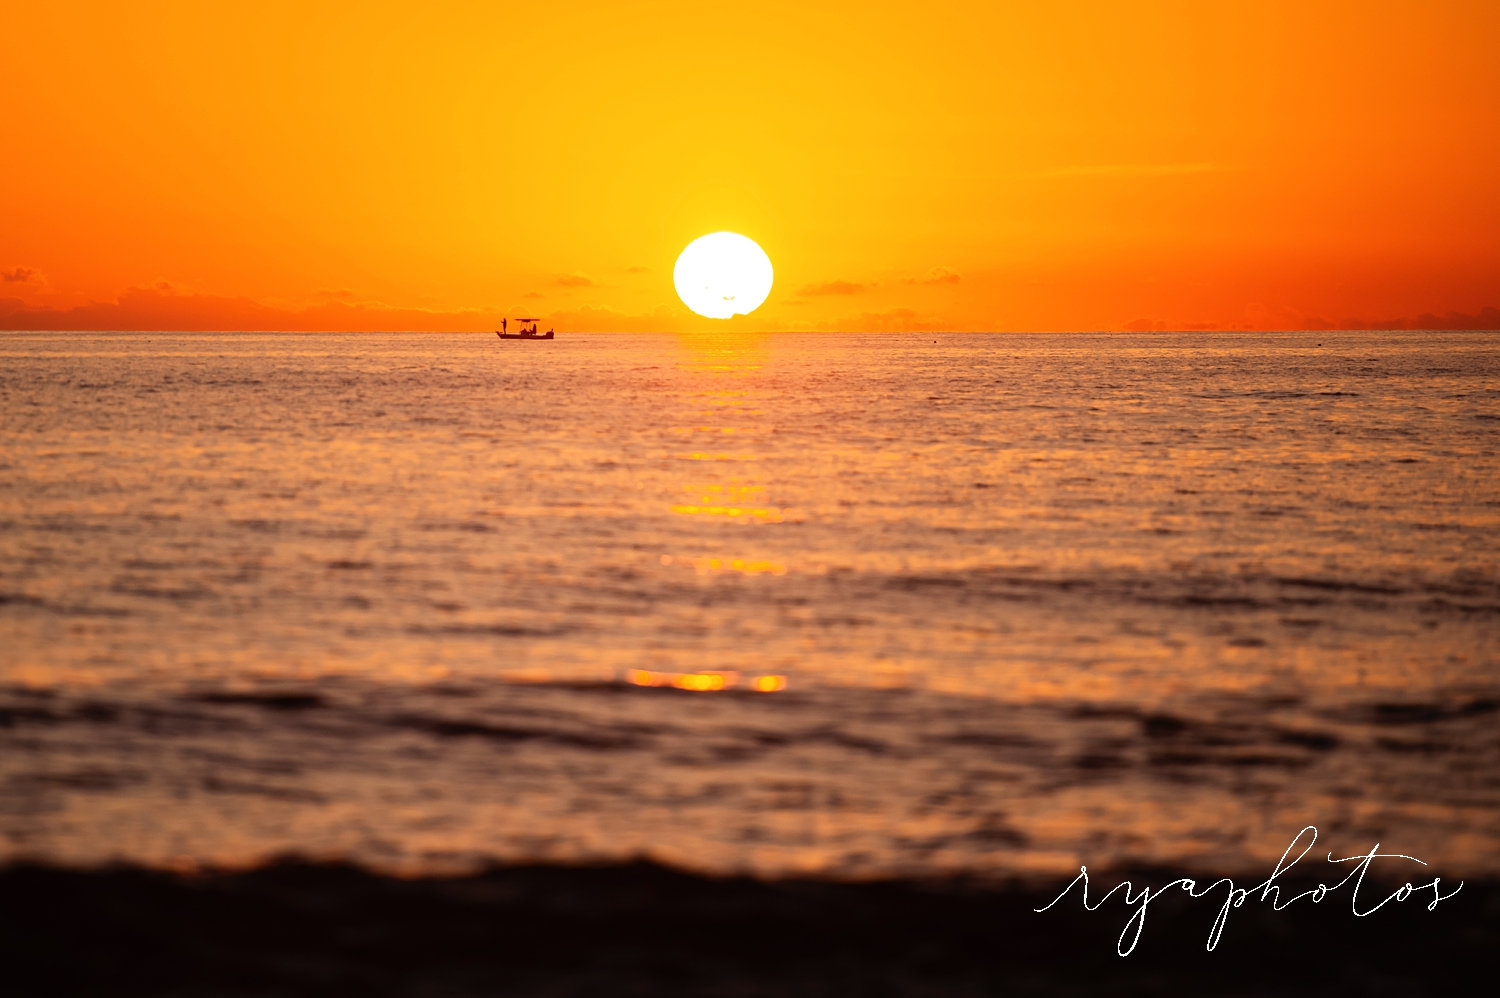 Naples, Florida sunset with boat silhouette, Naples sunset, Florida, Ryaphotos